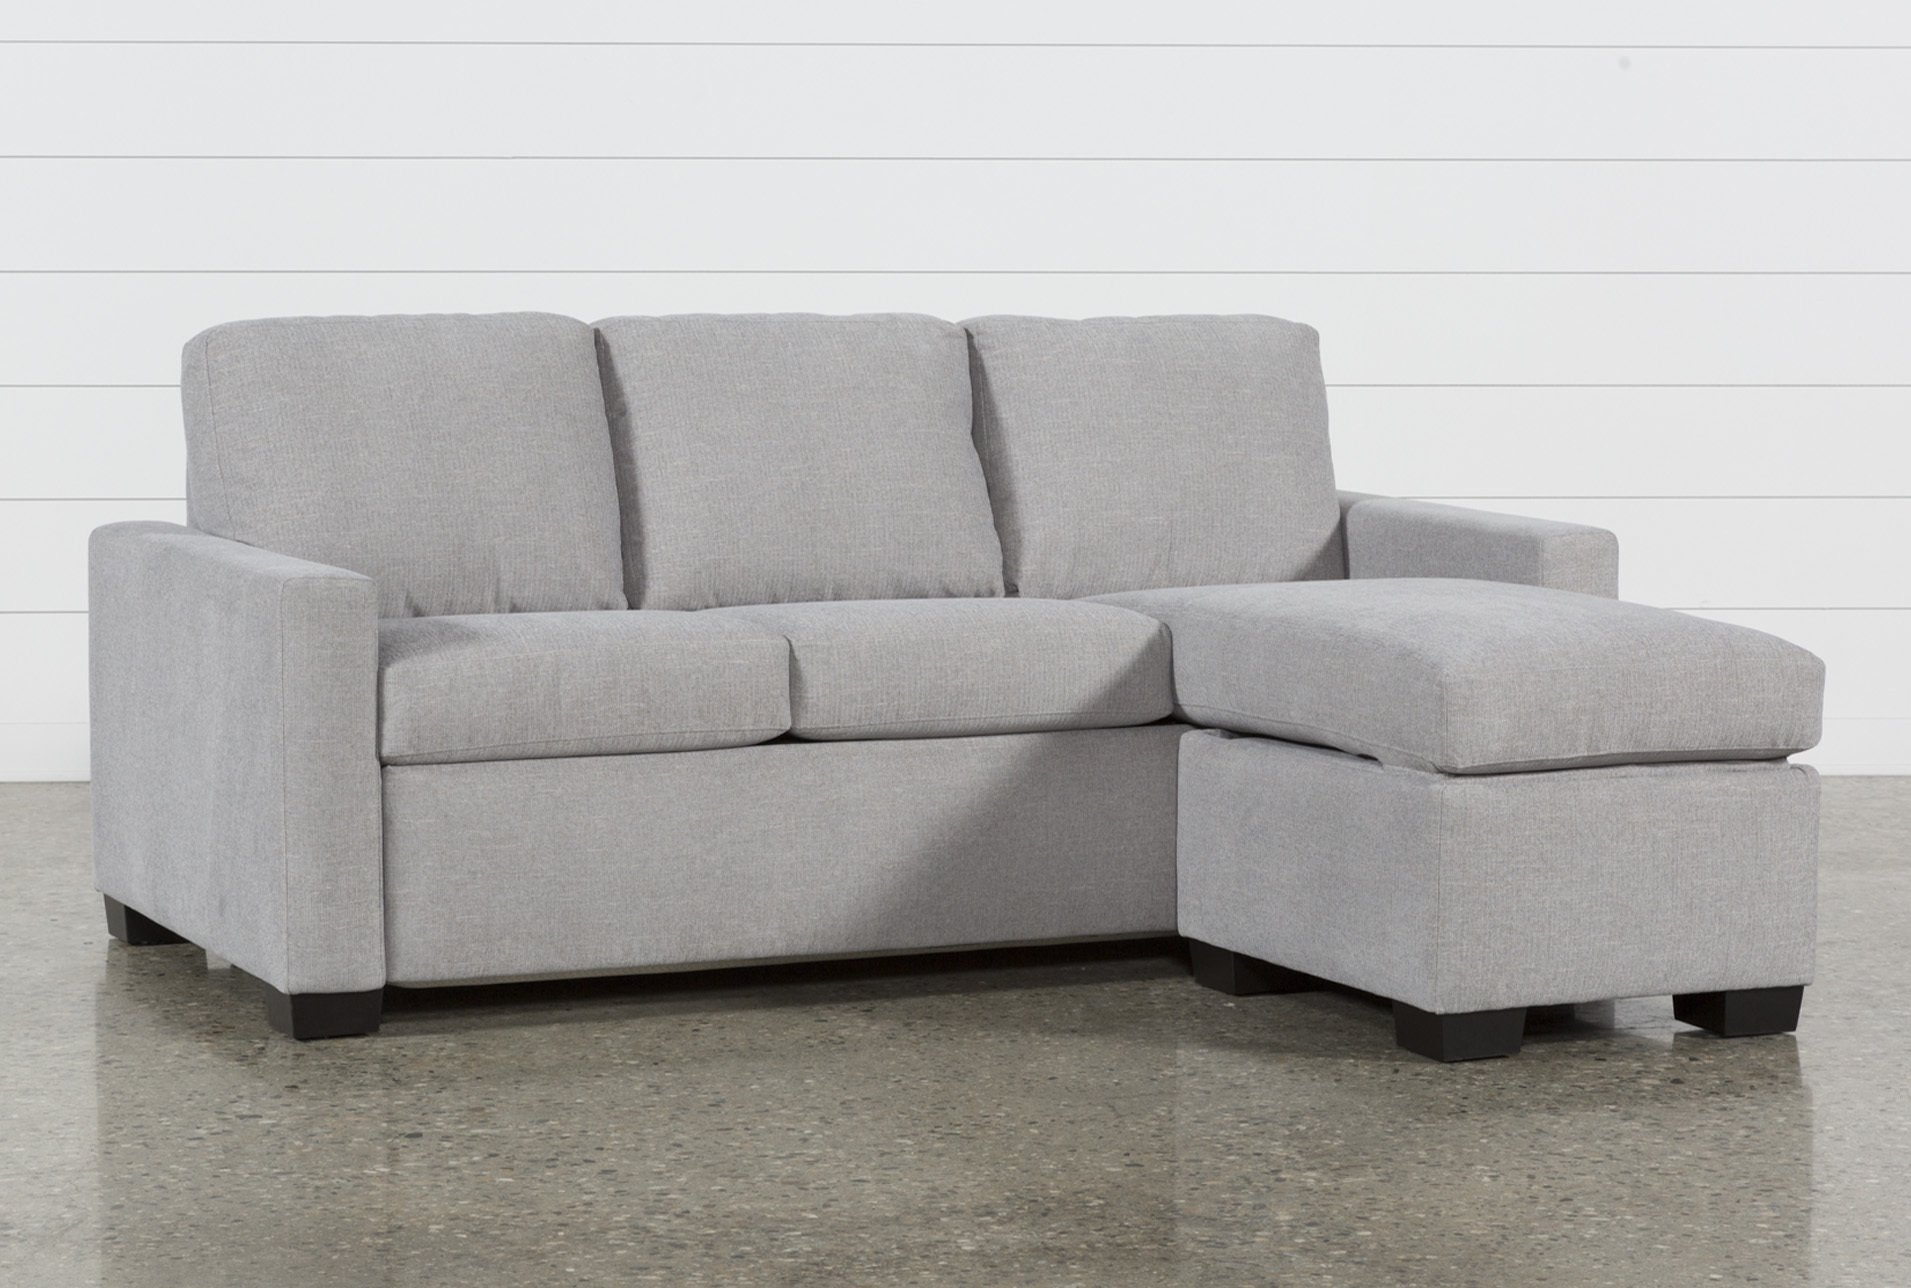 Sofa Beds for Added Comfort to Your Day   and Night